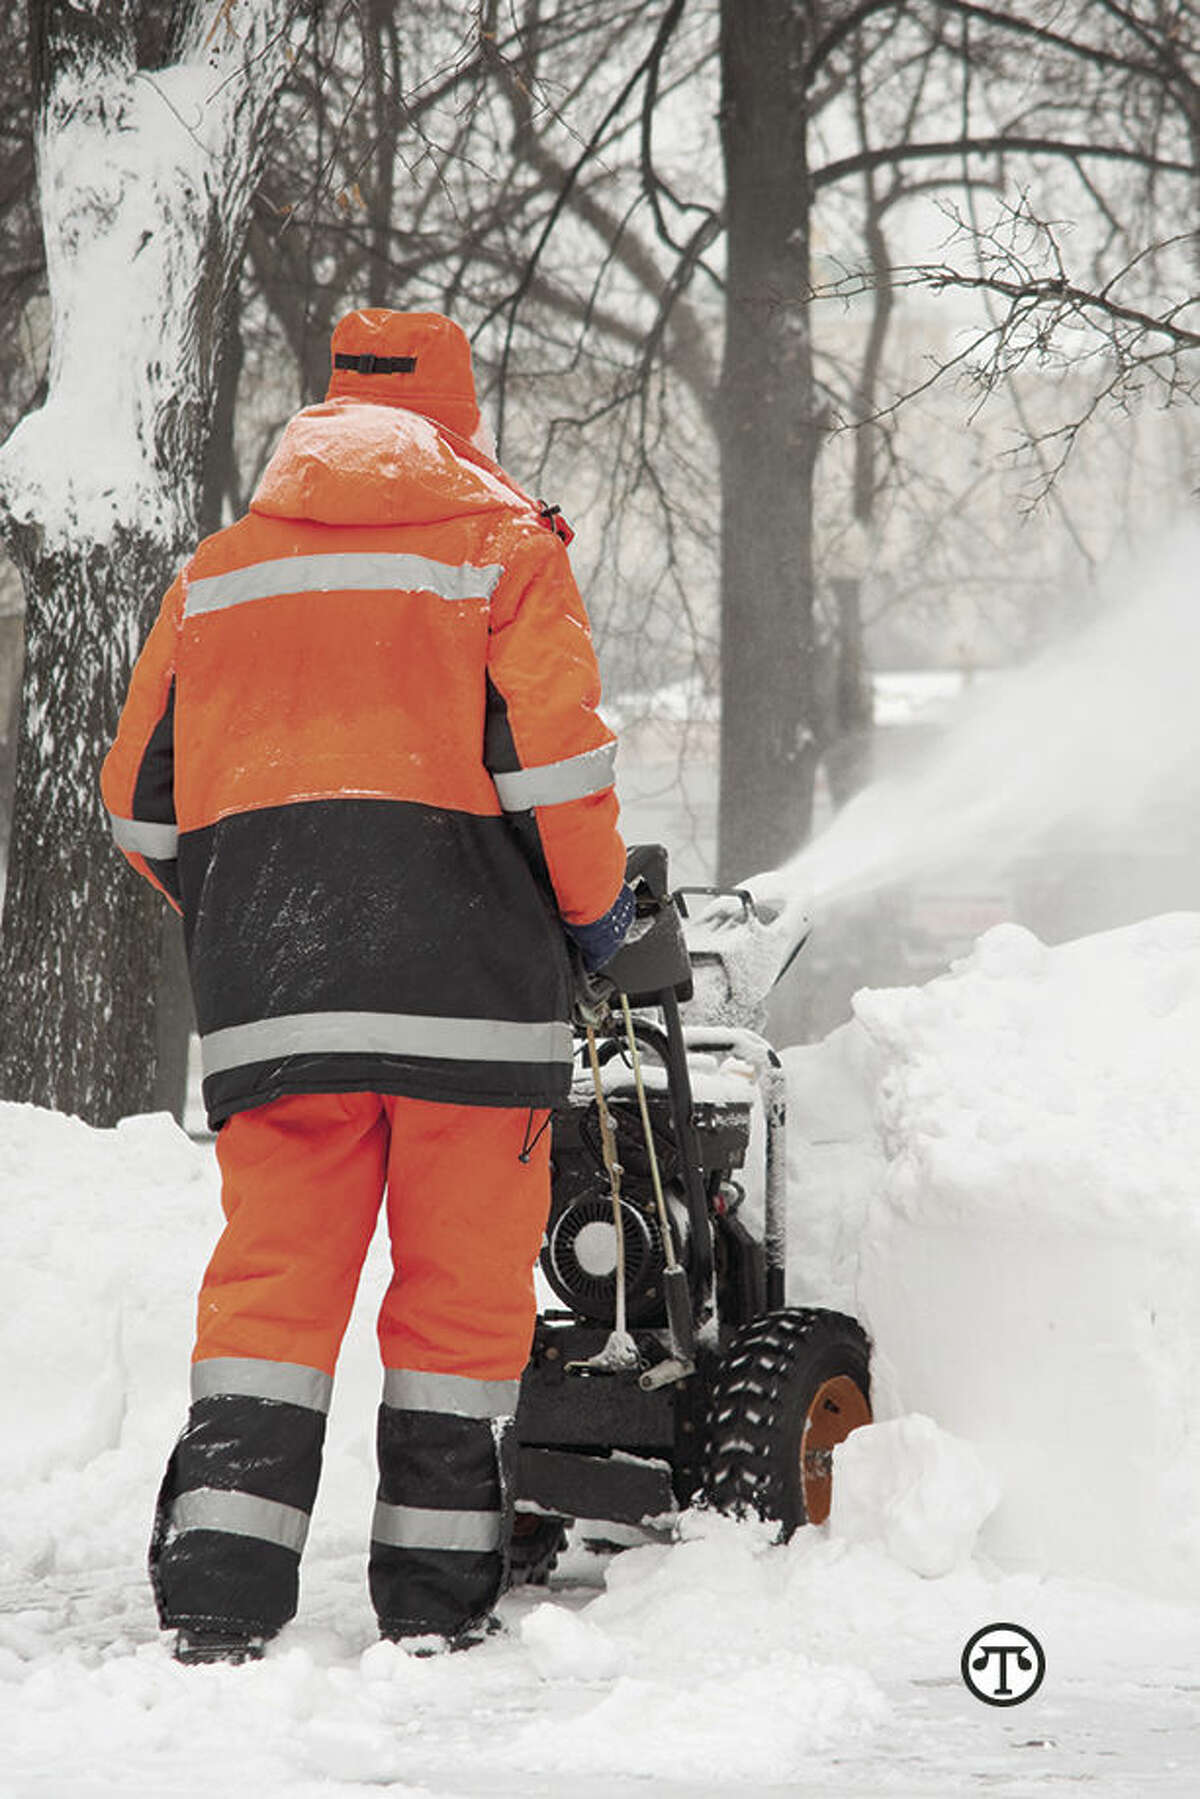 Snow thrower safety can be simpler if you heed 10 cool tips. (NAPS)